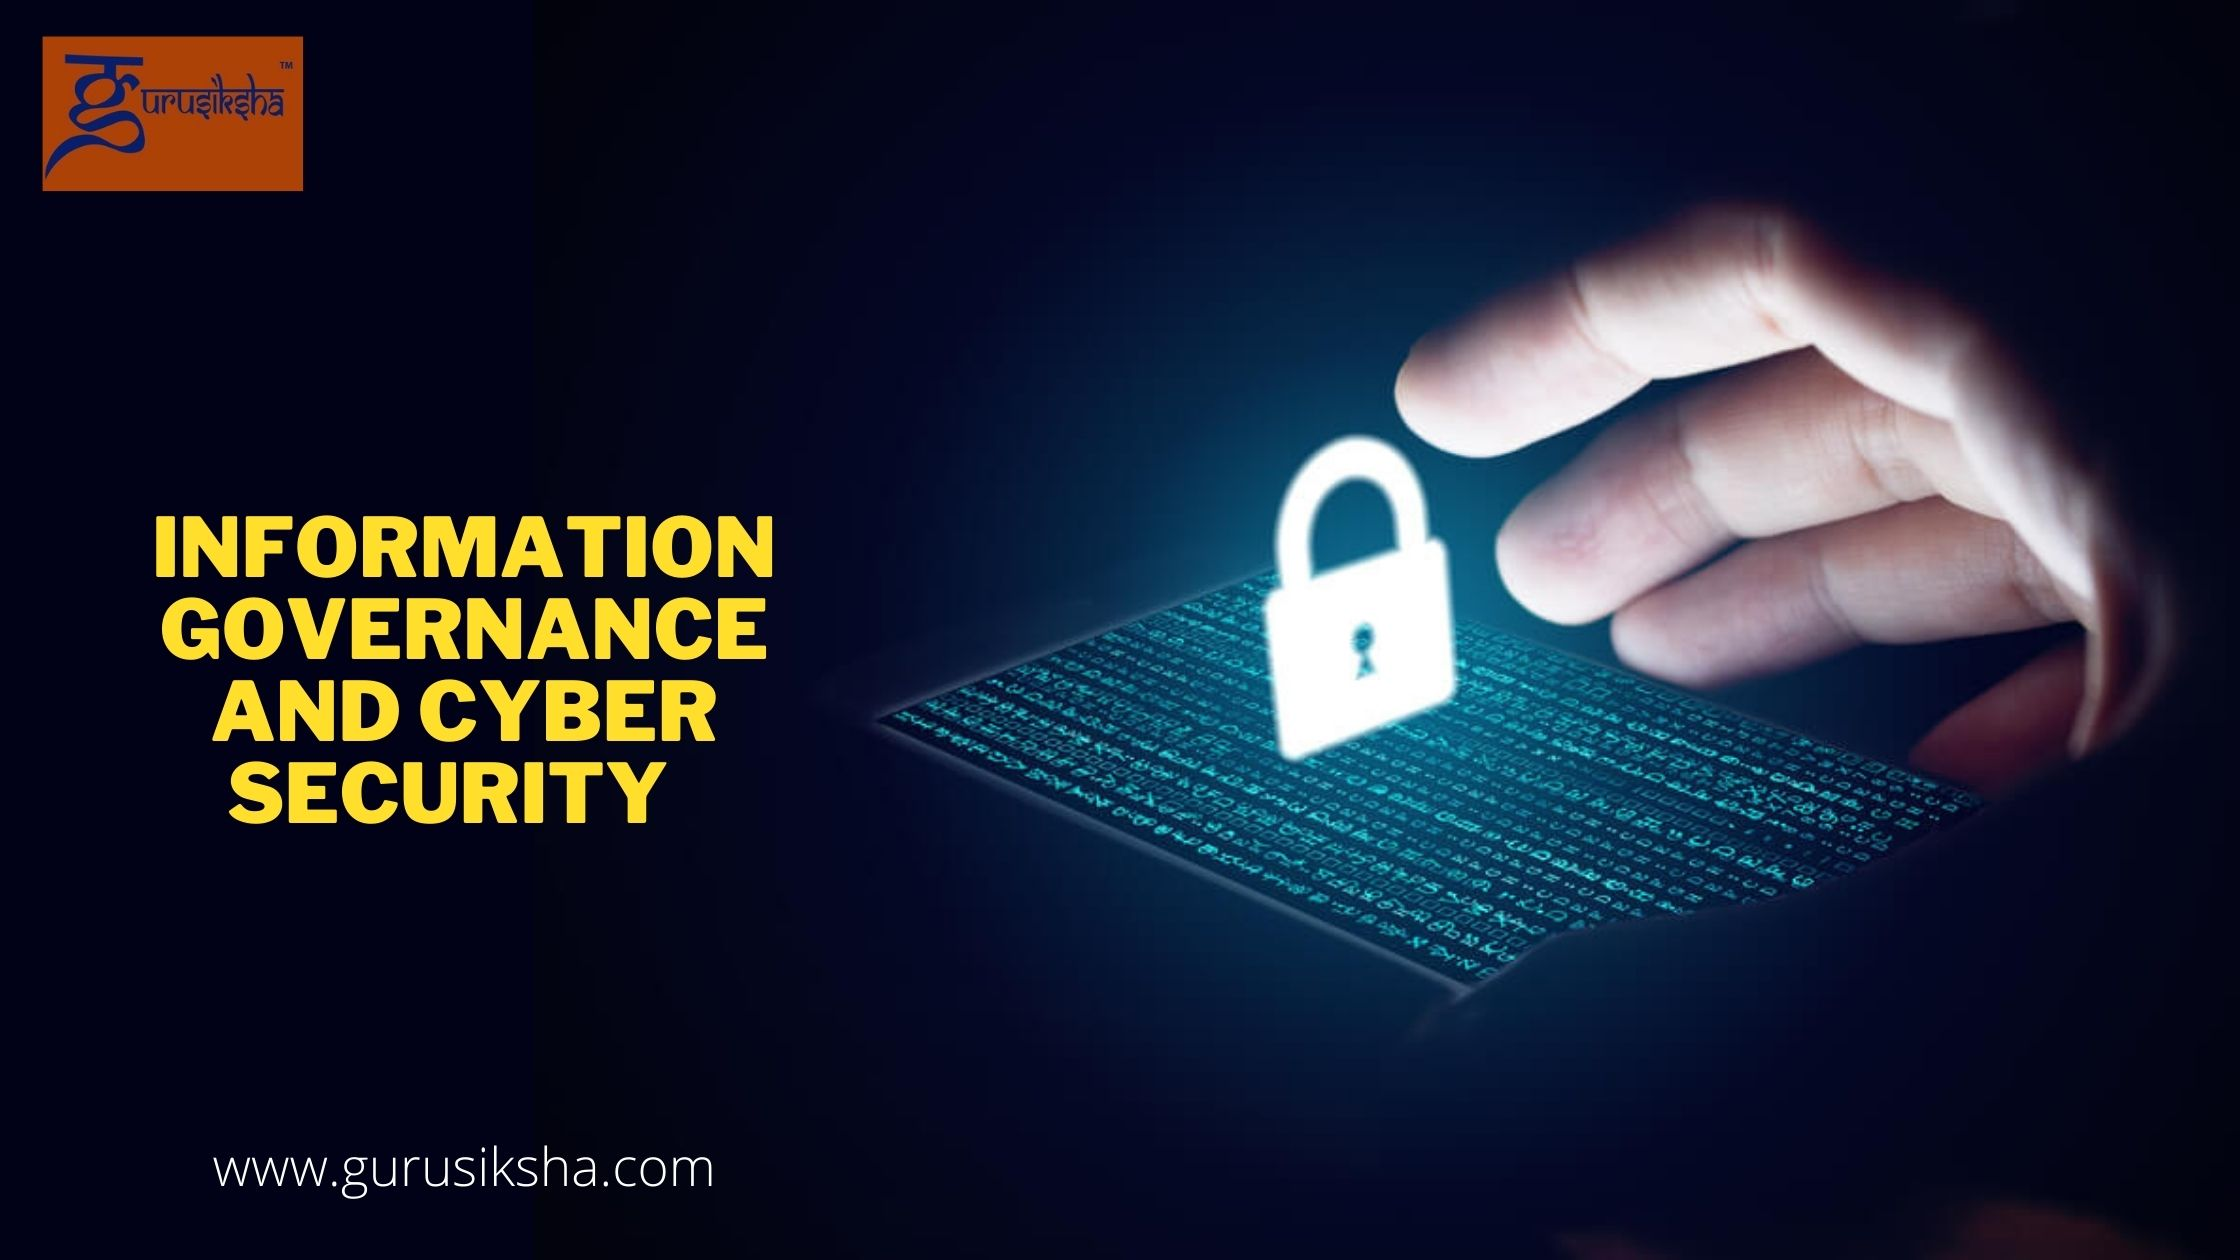 Information Governance And Cyber Security